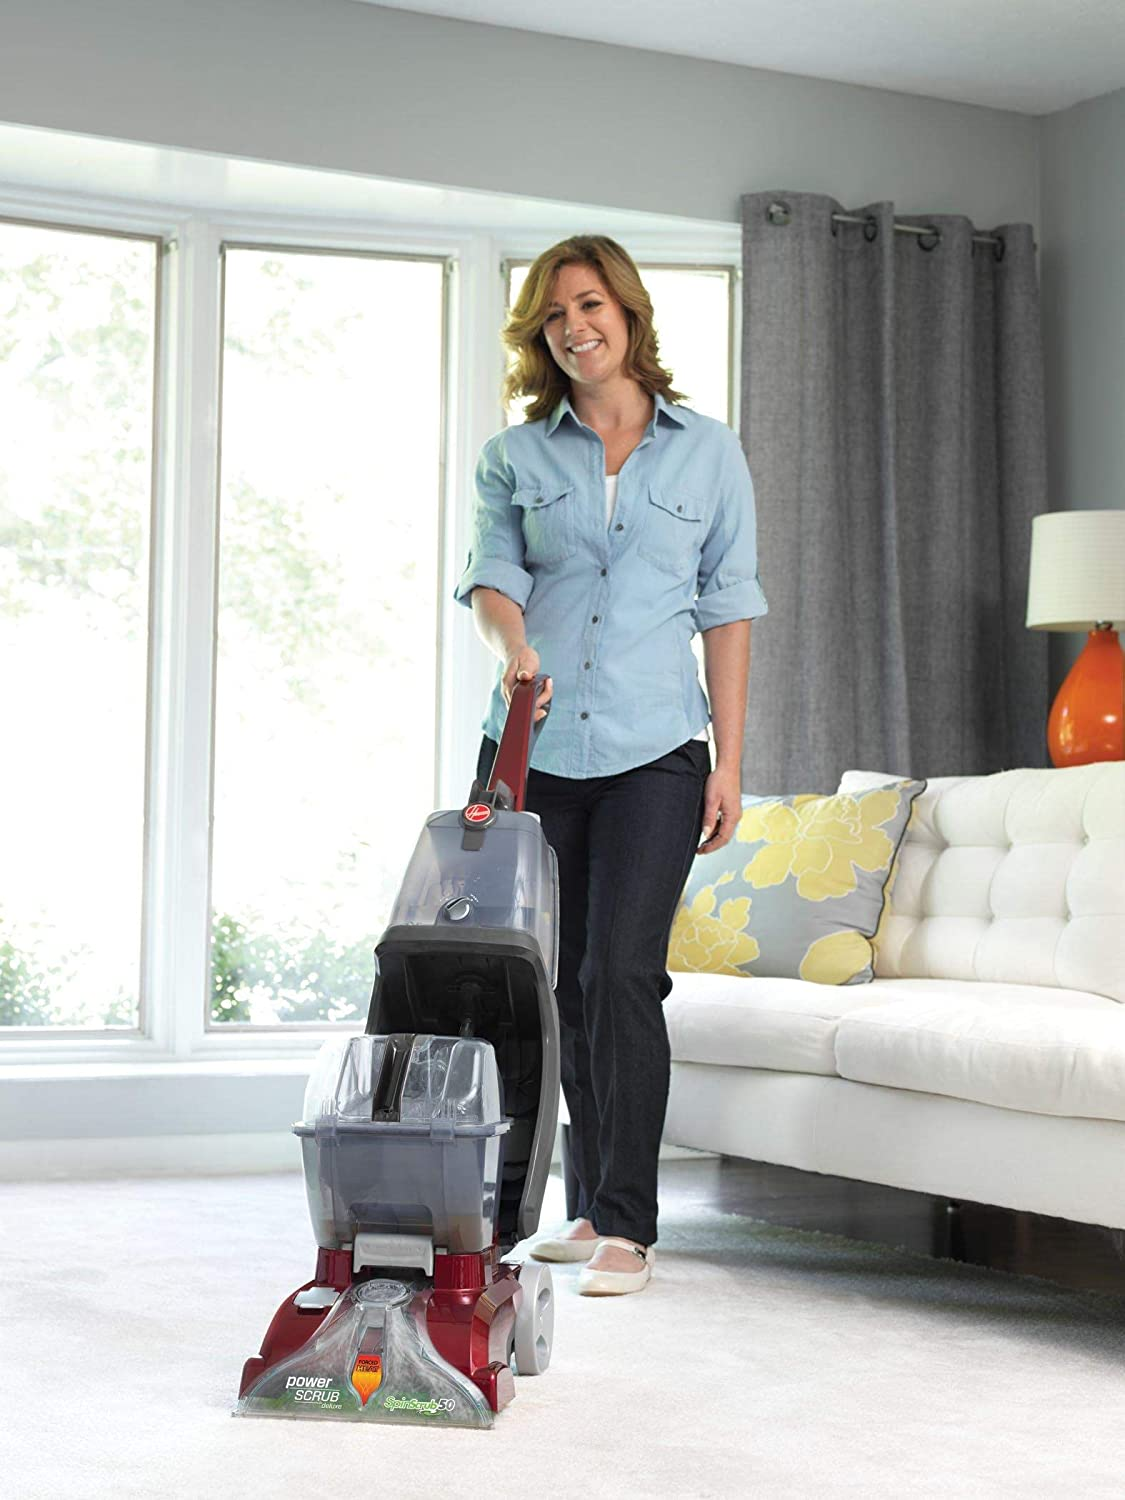 Hoover Power Scrub Deluxe Carpet Cleaner Machine, Upright Shampooer